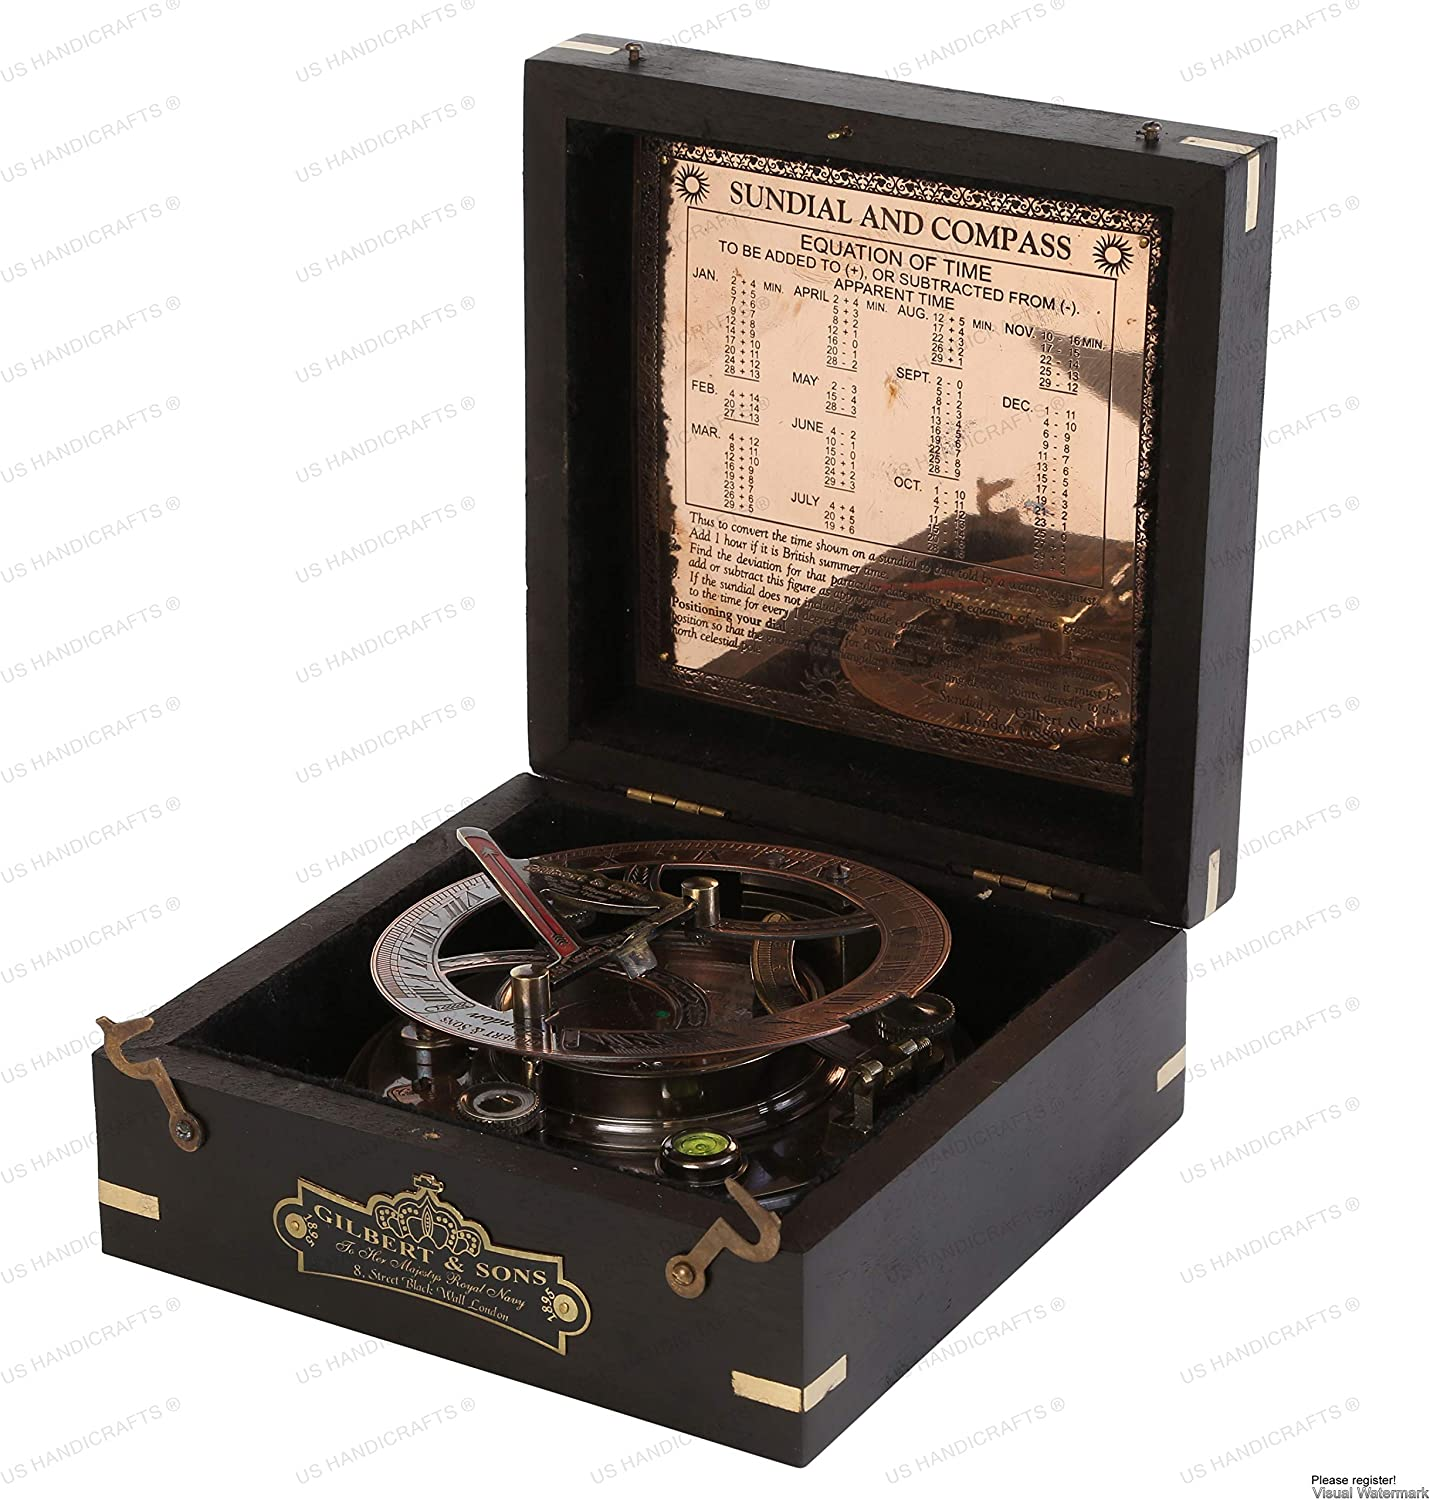 US HANDICRAFTS Ideas for Men Xmas 5 Inch Perfectly Calibrated Large Sundial Compass Black Wooden Case Top Grade Engraved Brass Sundial with Embossed Needle